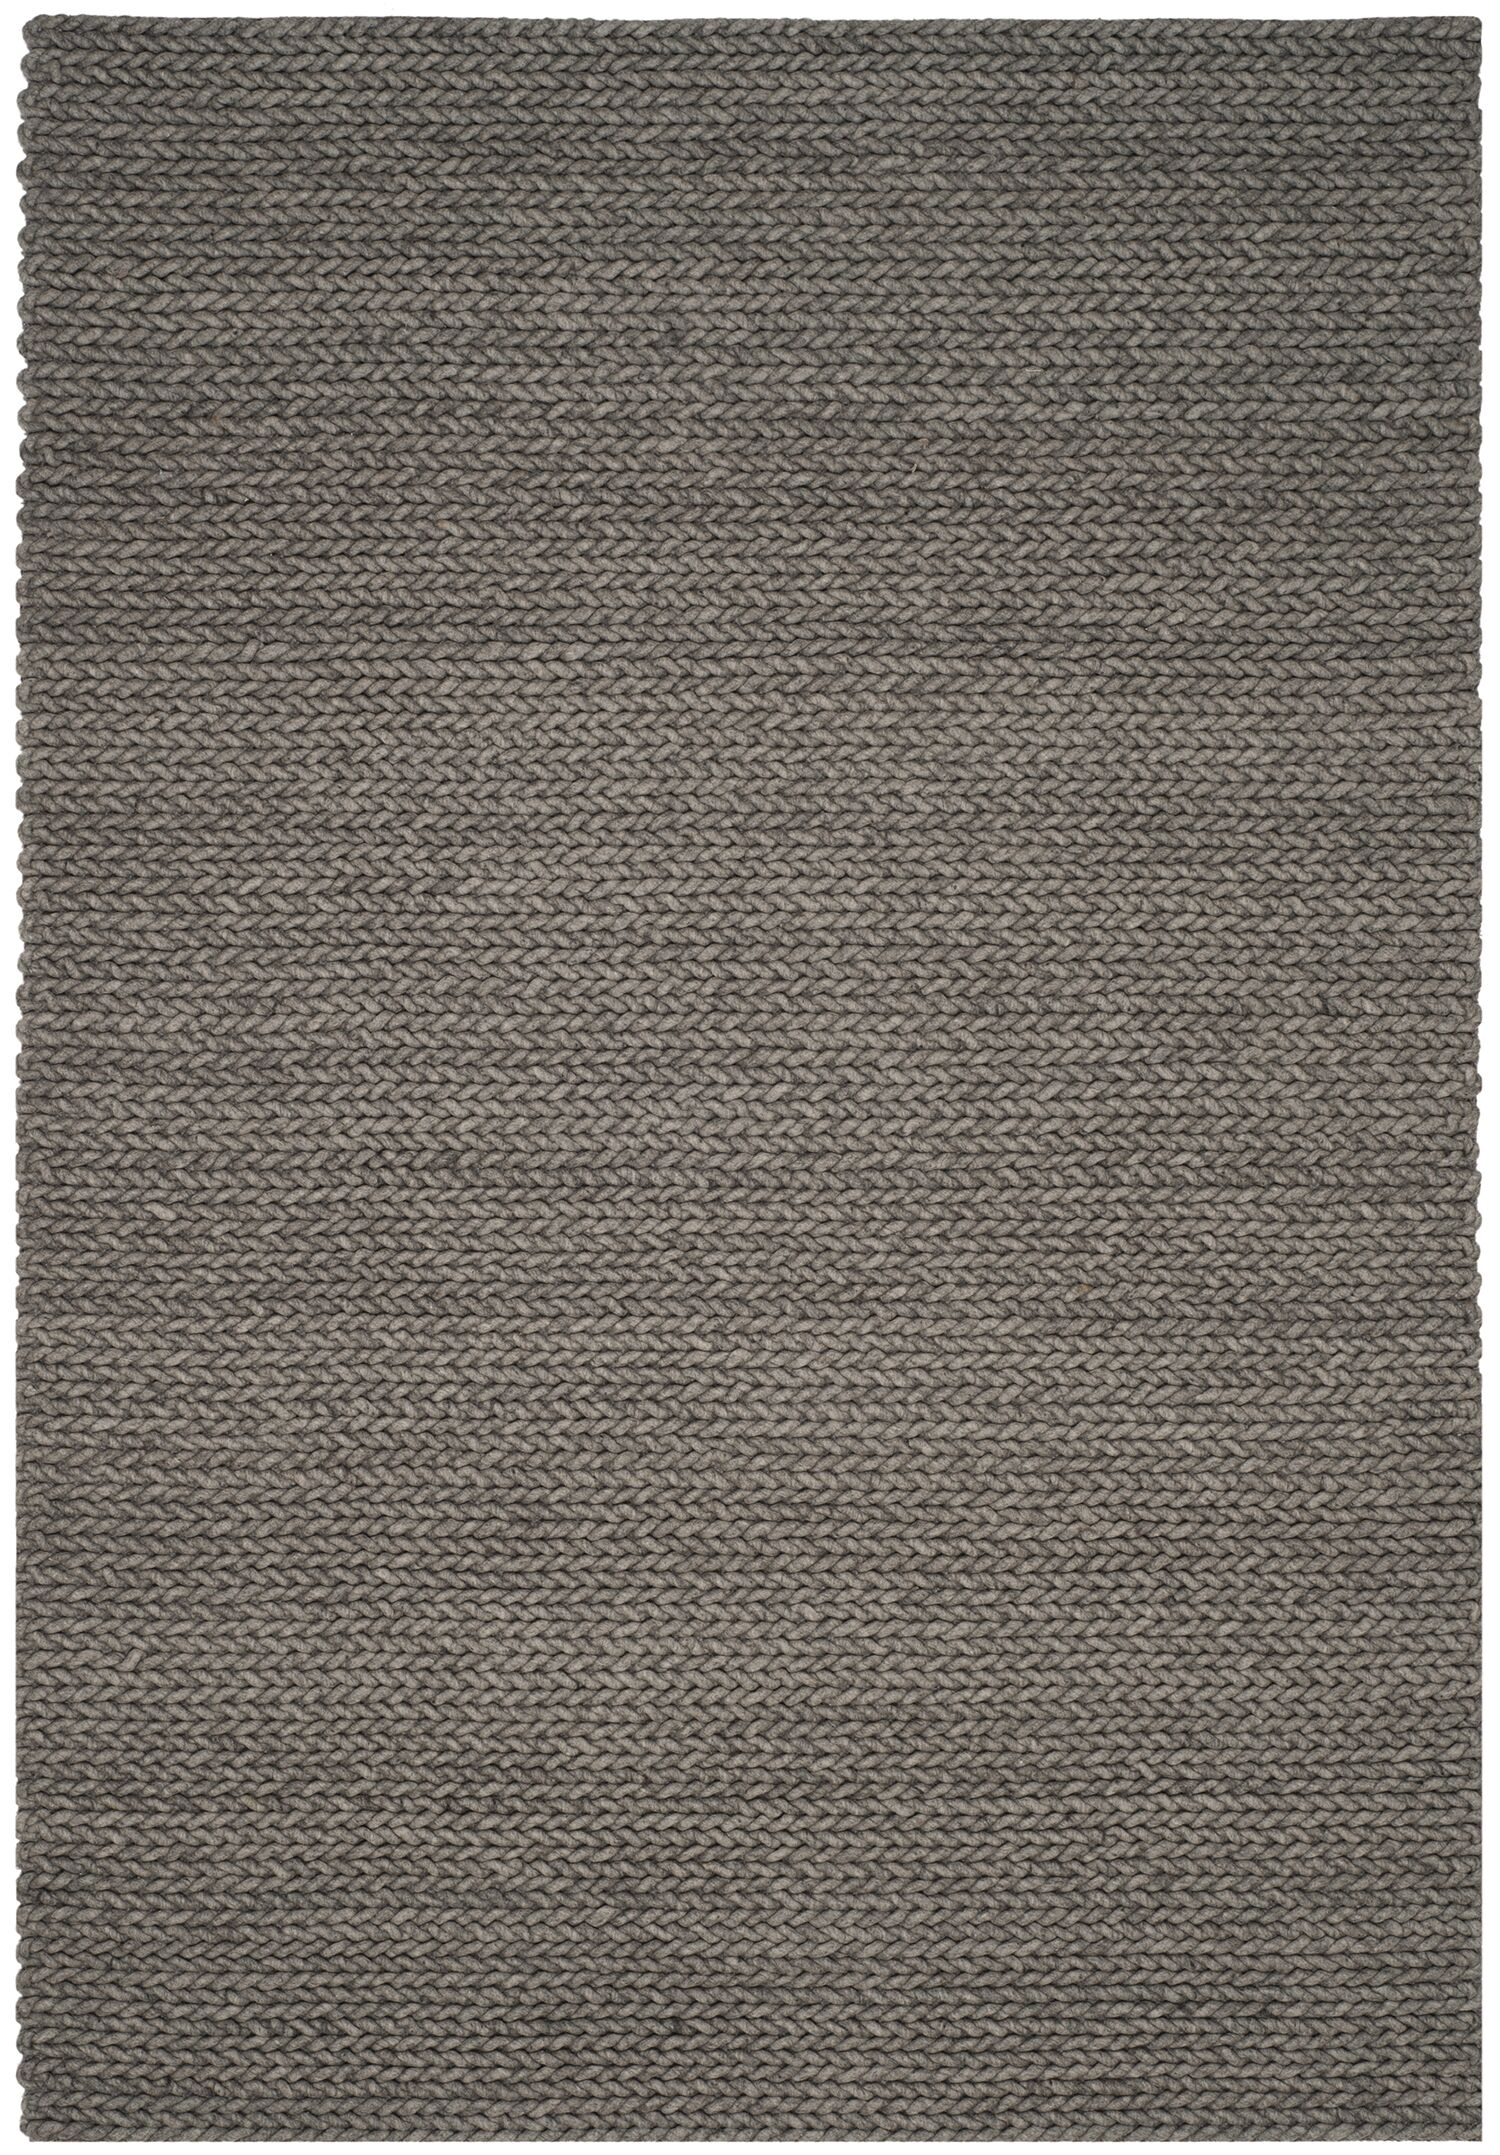 Sinope Hand-Tufted Gray Area Rug Rug Size: Rectangle 6' x 9'